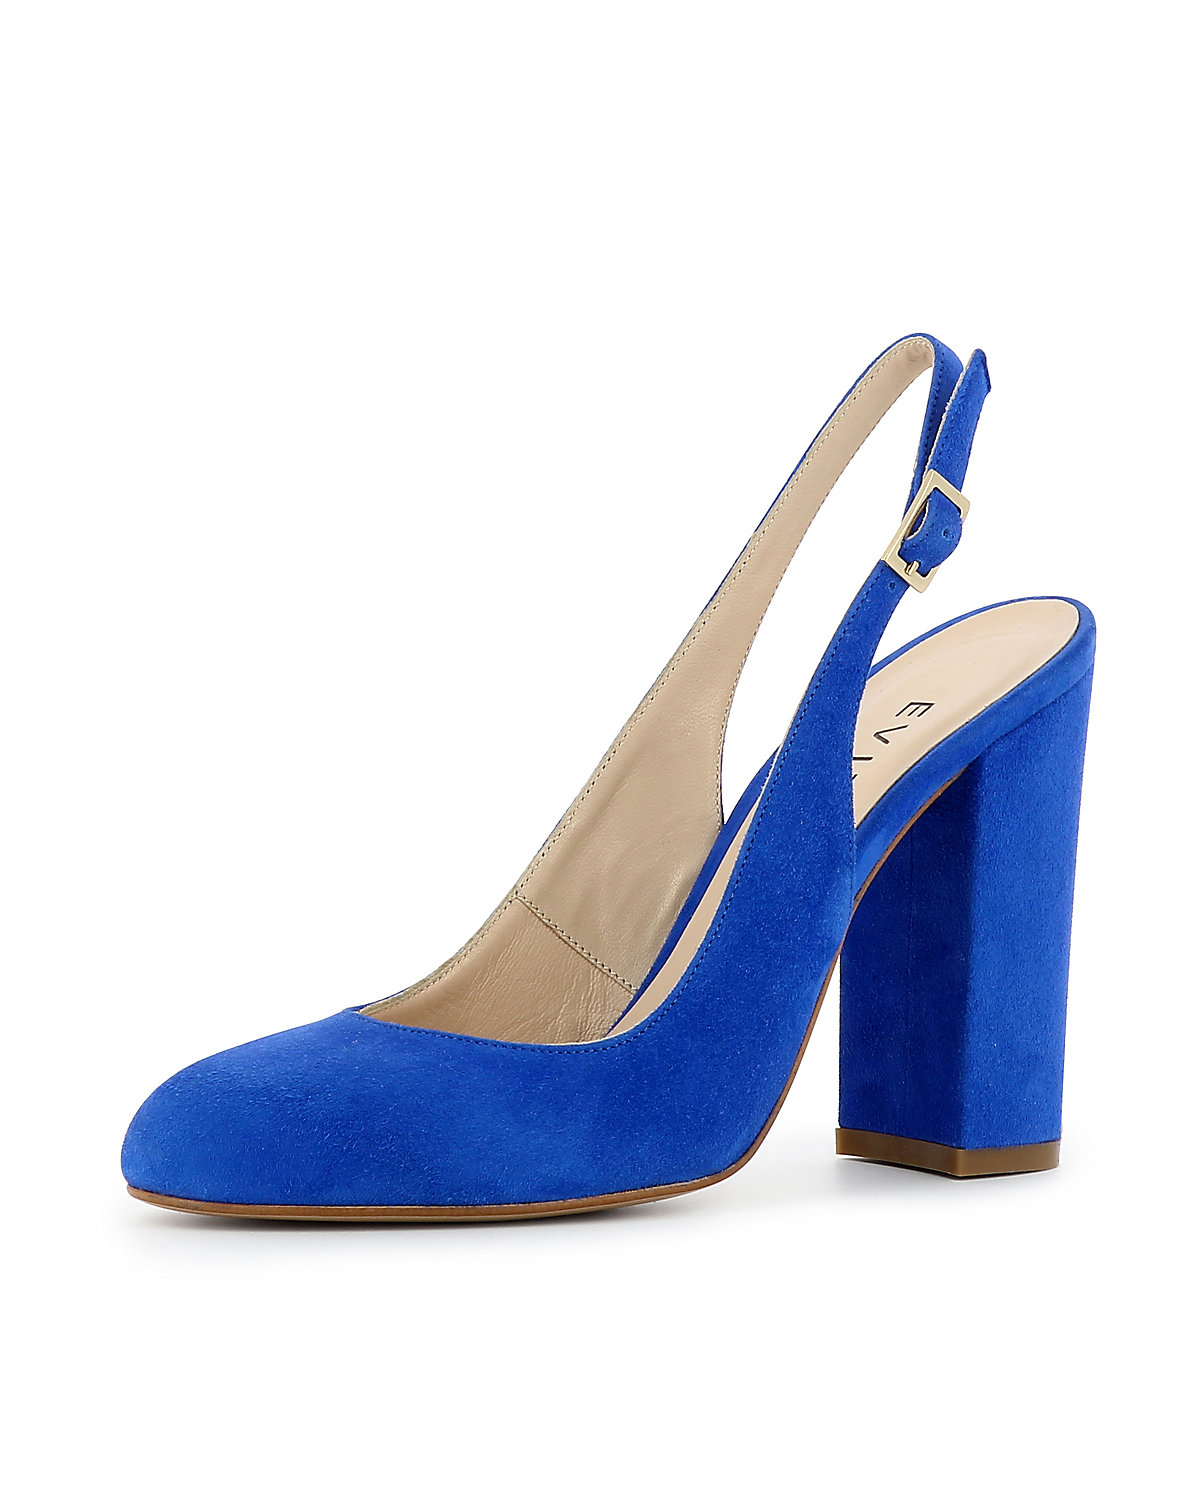 Evita Shoes, Evita Shoes Pumps, blau